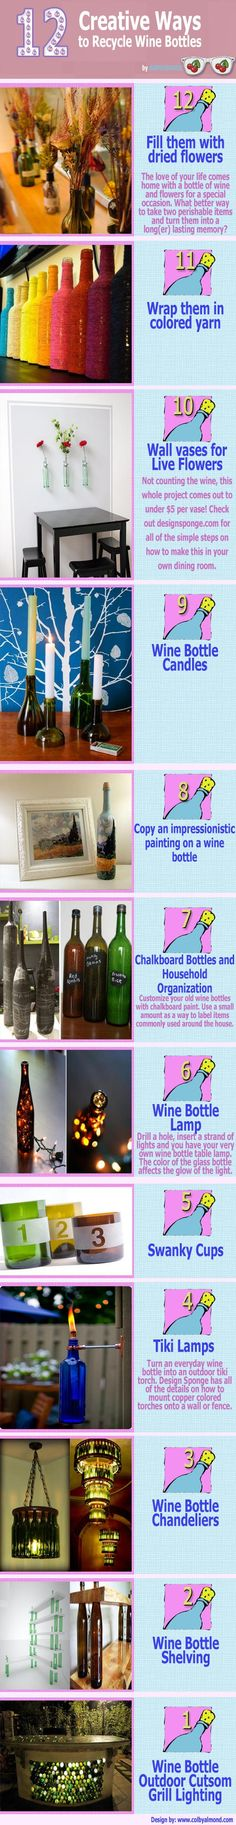 Wine bottle crafts stuff - thought of you @valli H